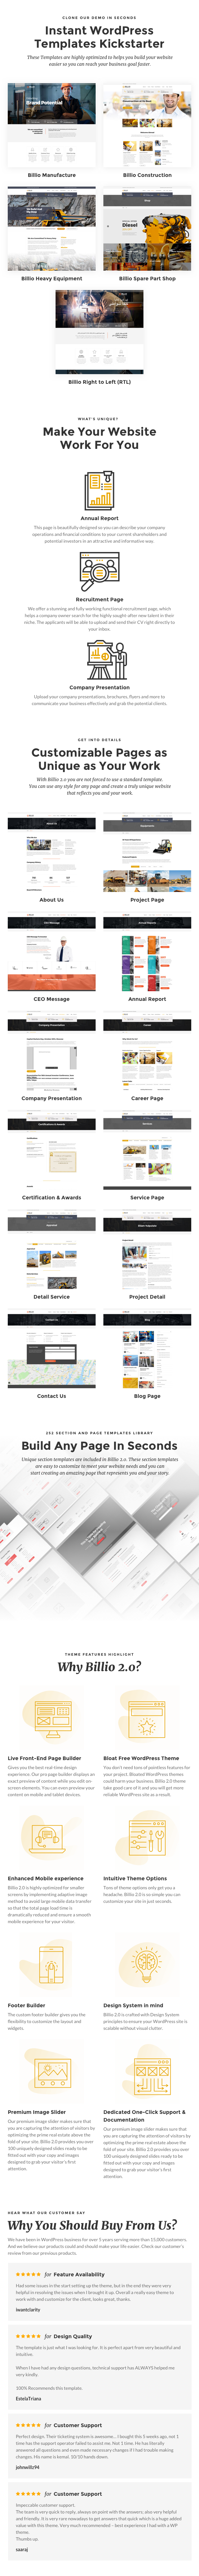 Billio 2.0 - Engineering & Industrial WordPress Theme - 1